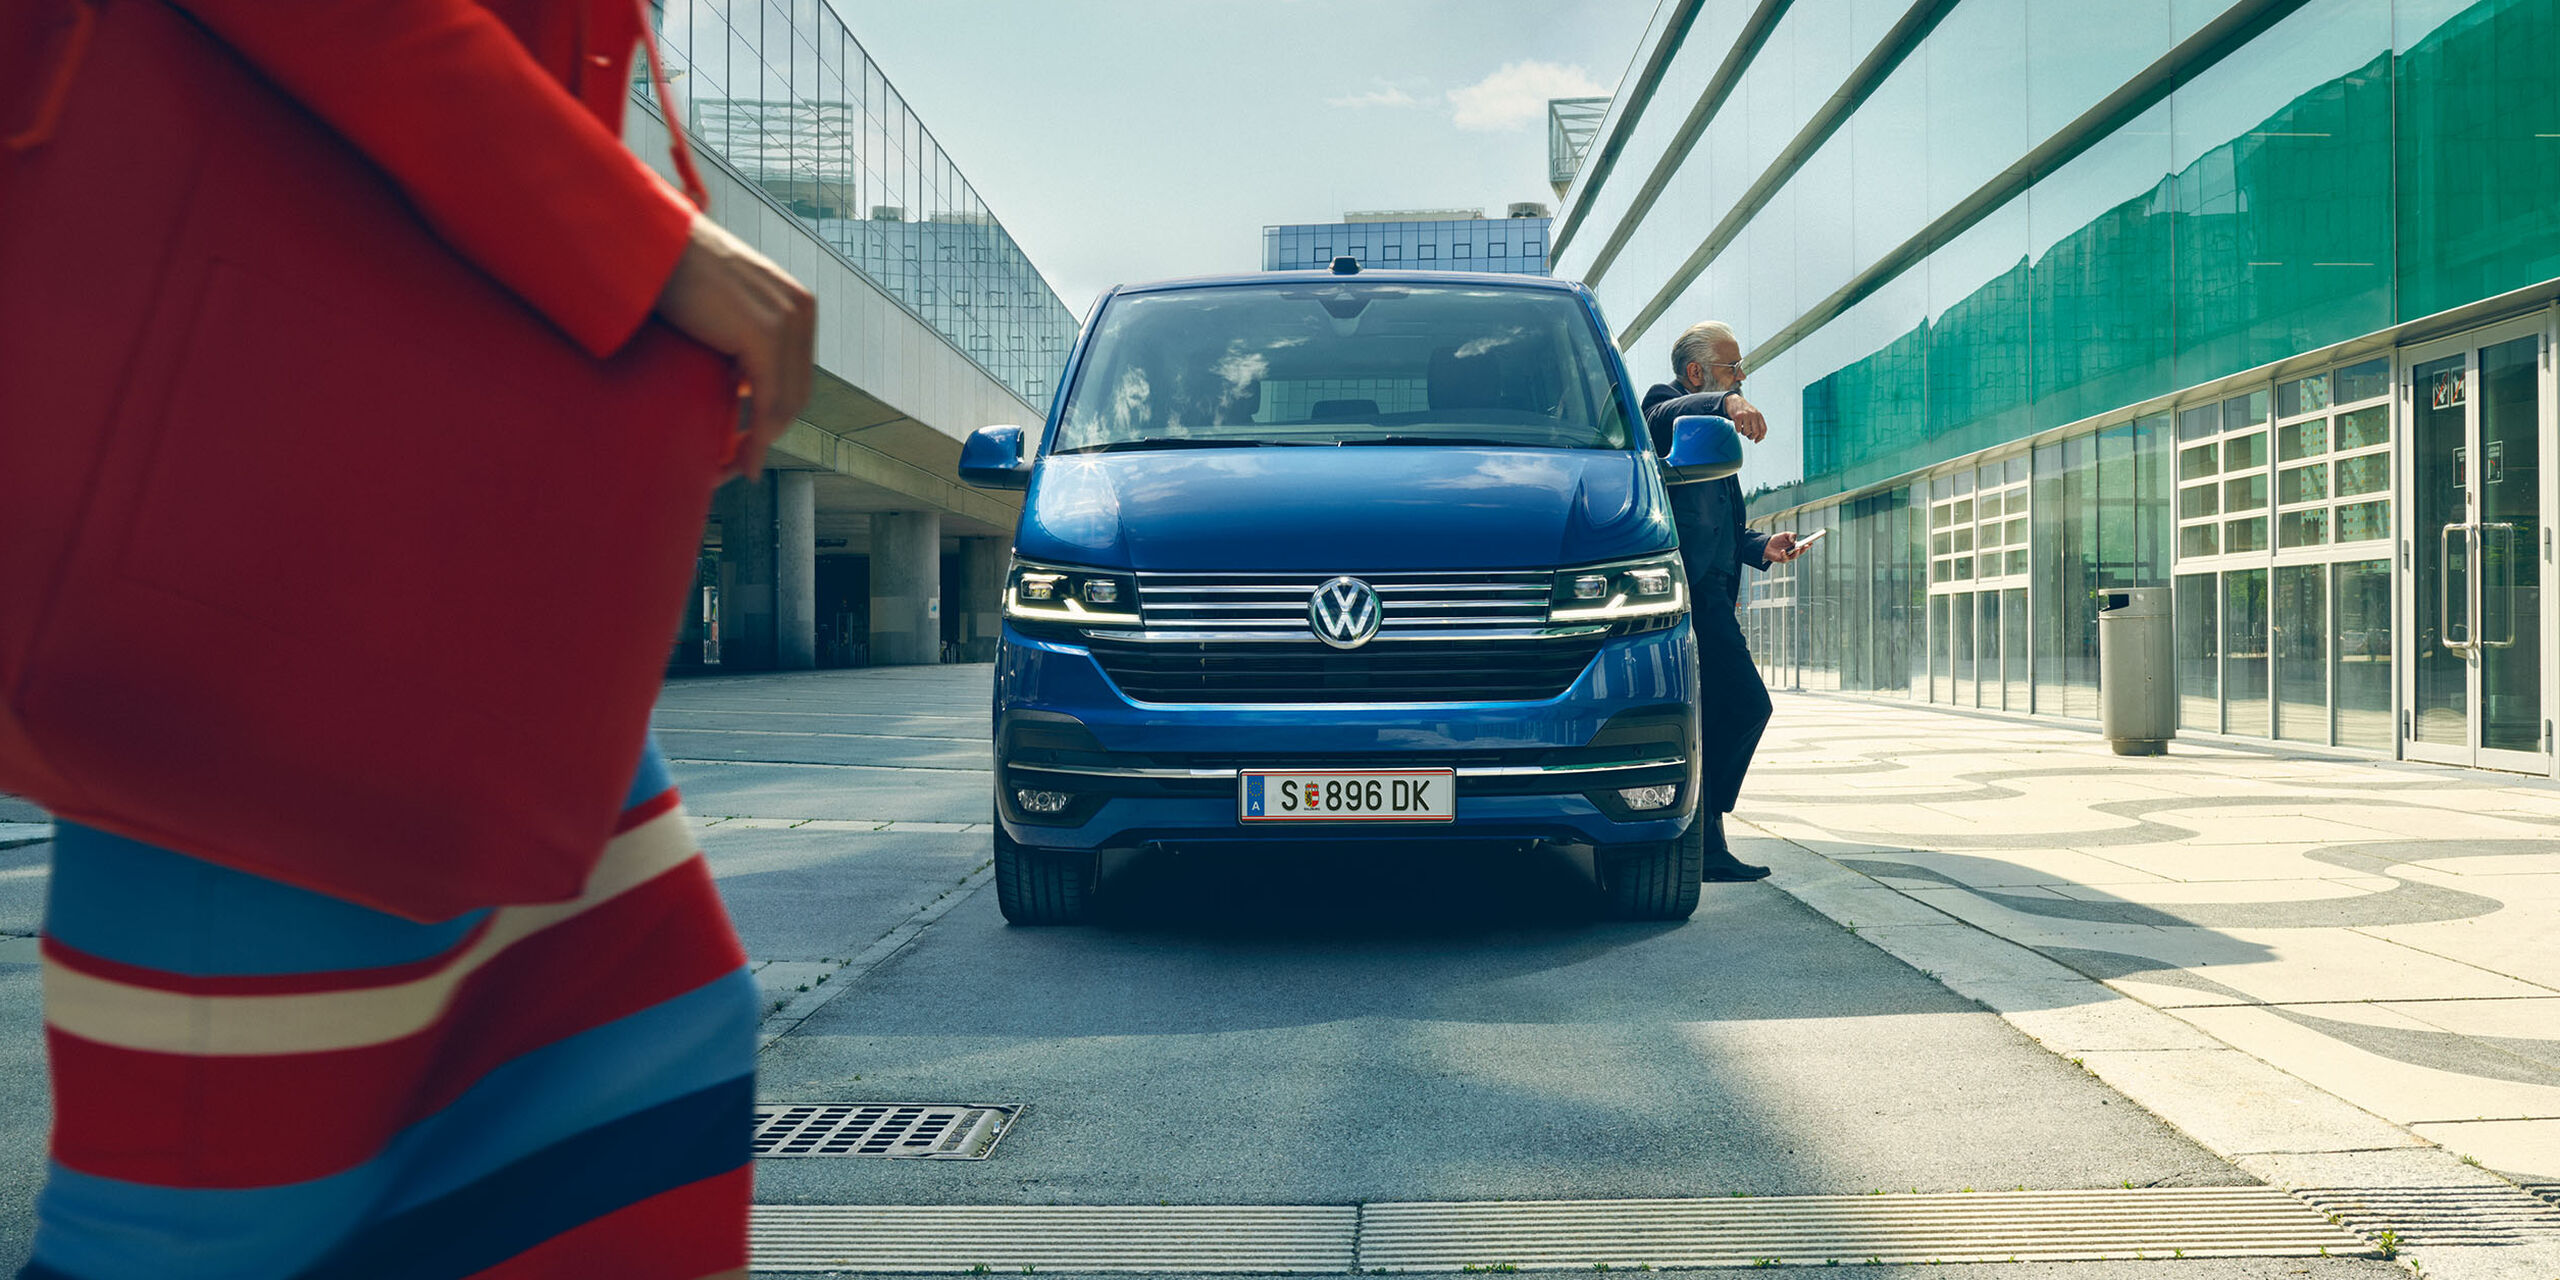 VW Caravelle 6.1 blau Frontansicht in Stadt